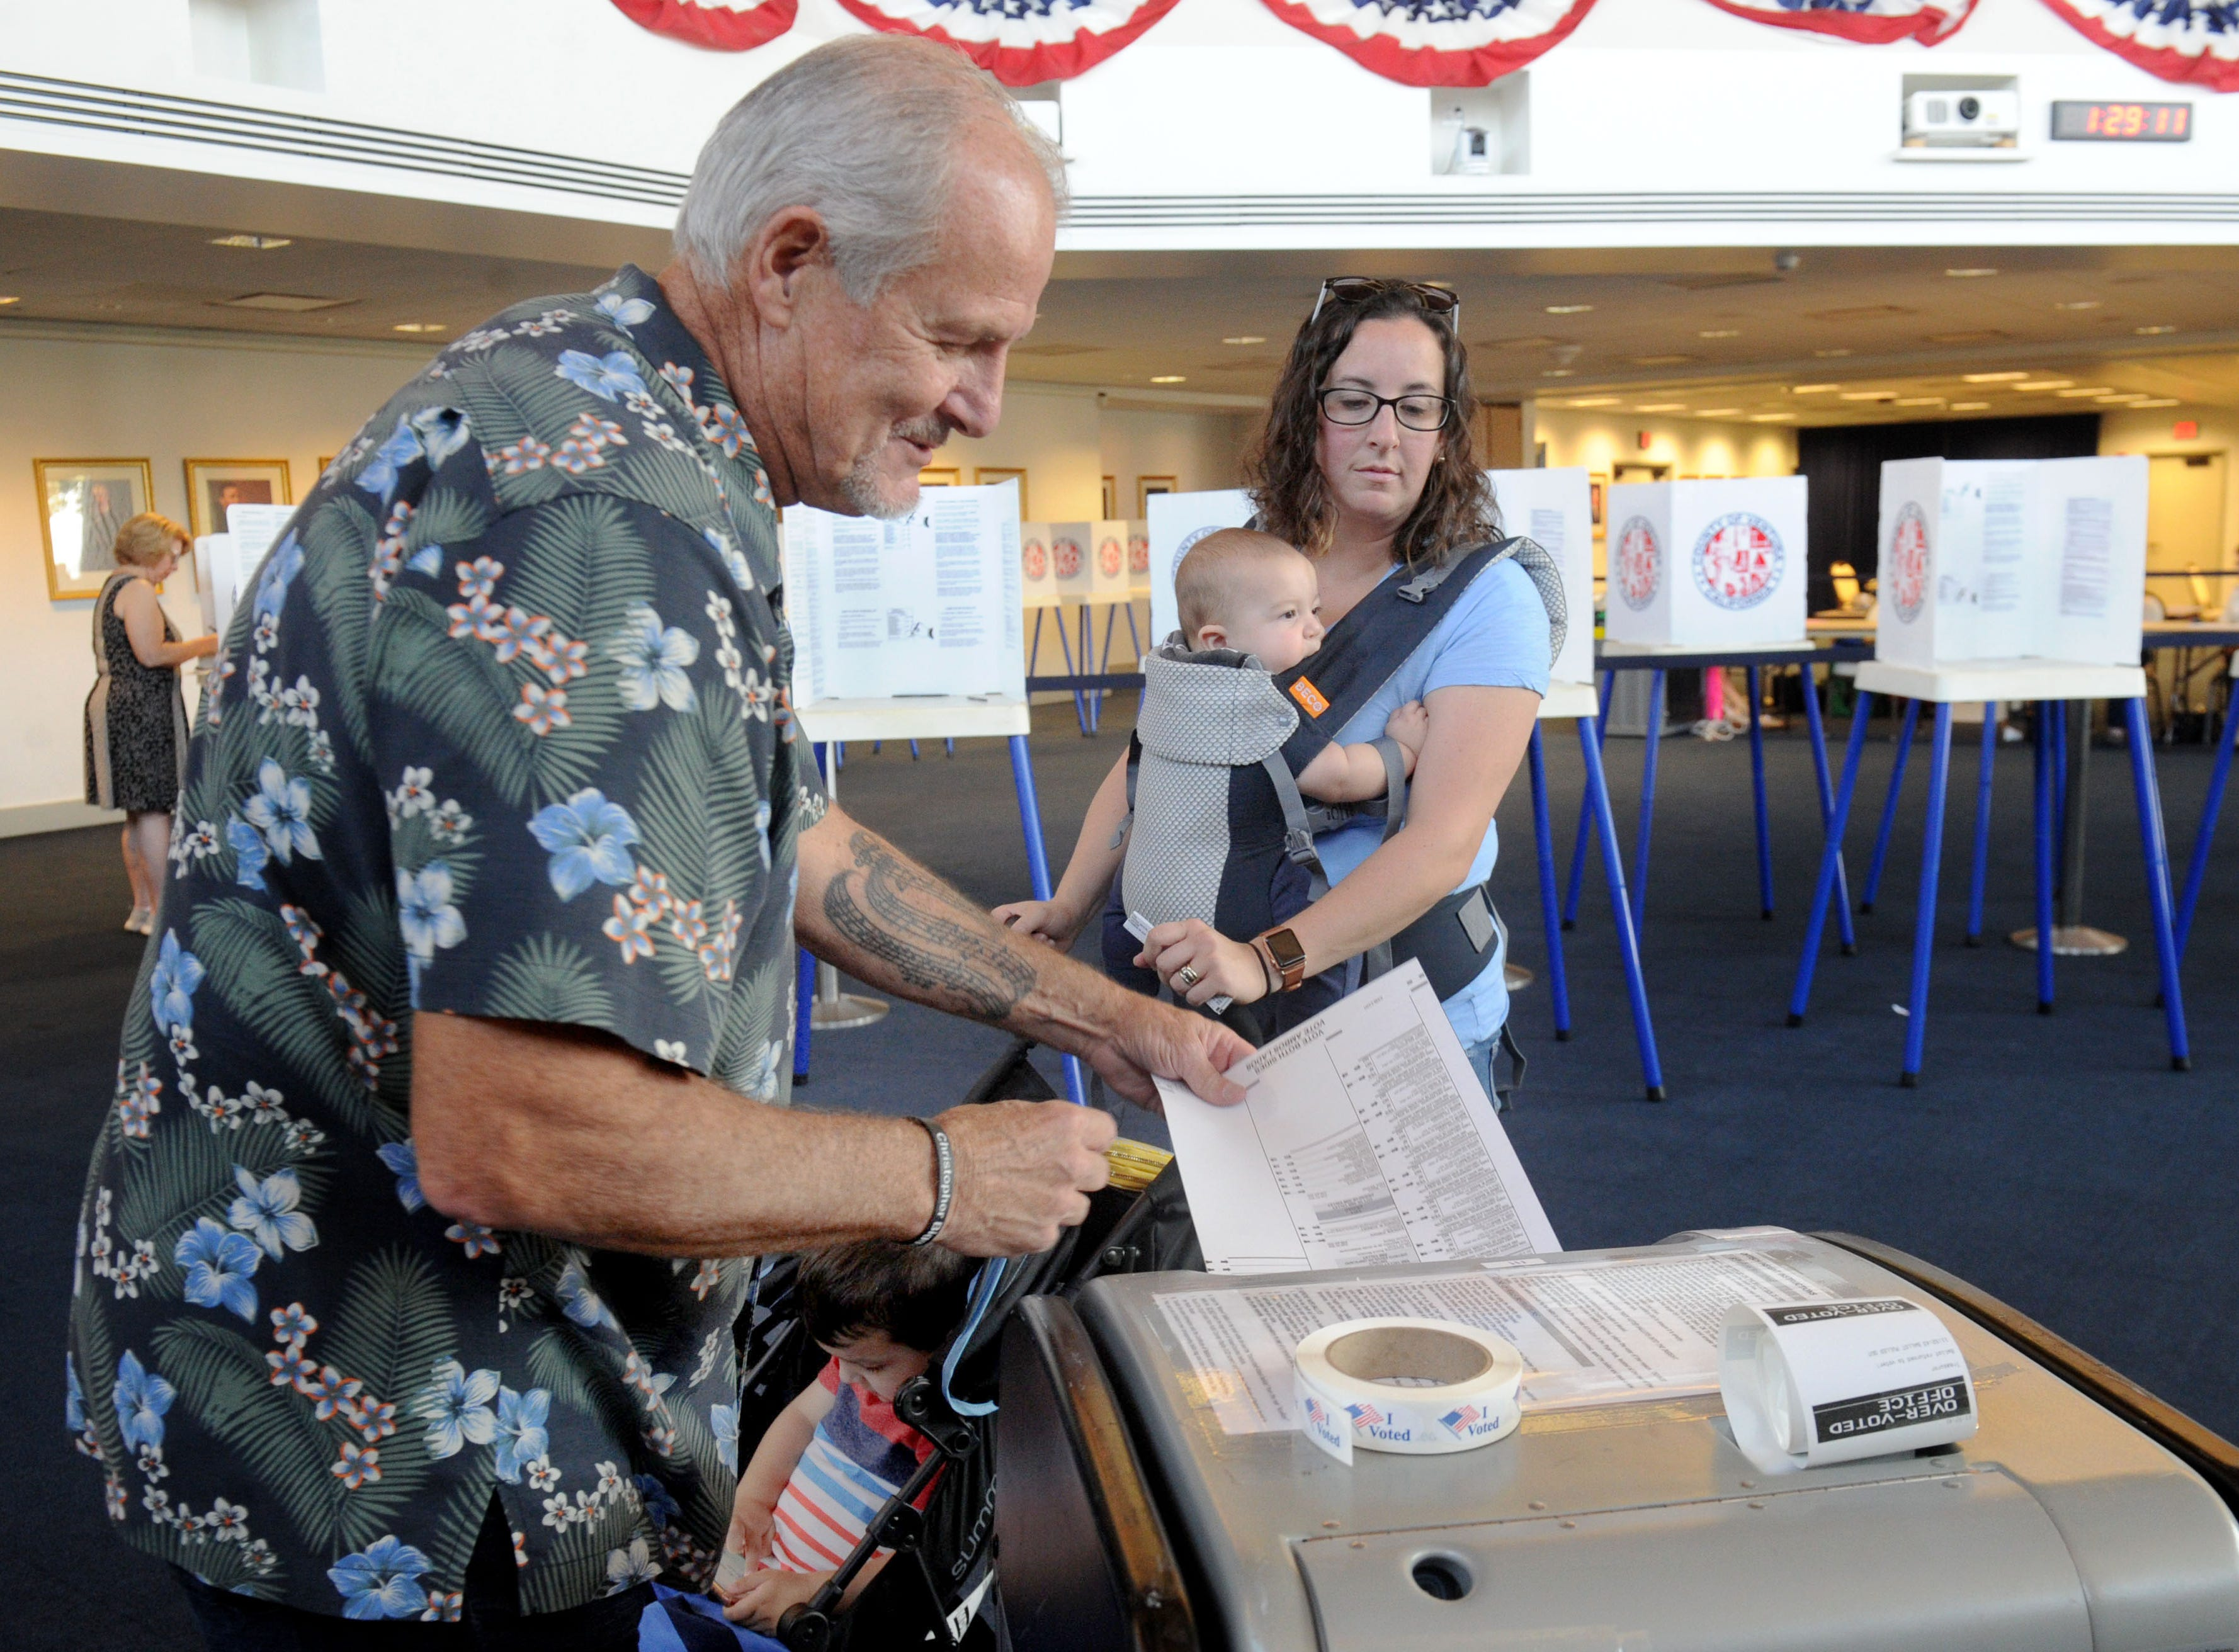 John Biggs, an inspector at the polls, helps Rochelle Mathews as she casts her vote at the Ronald Reagan Presidential Library & Museum in Simi Valley.